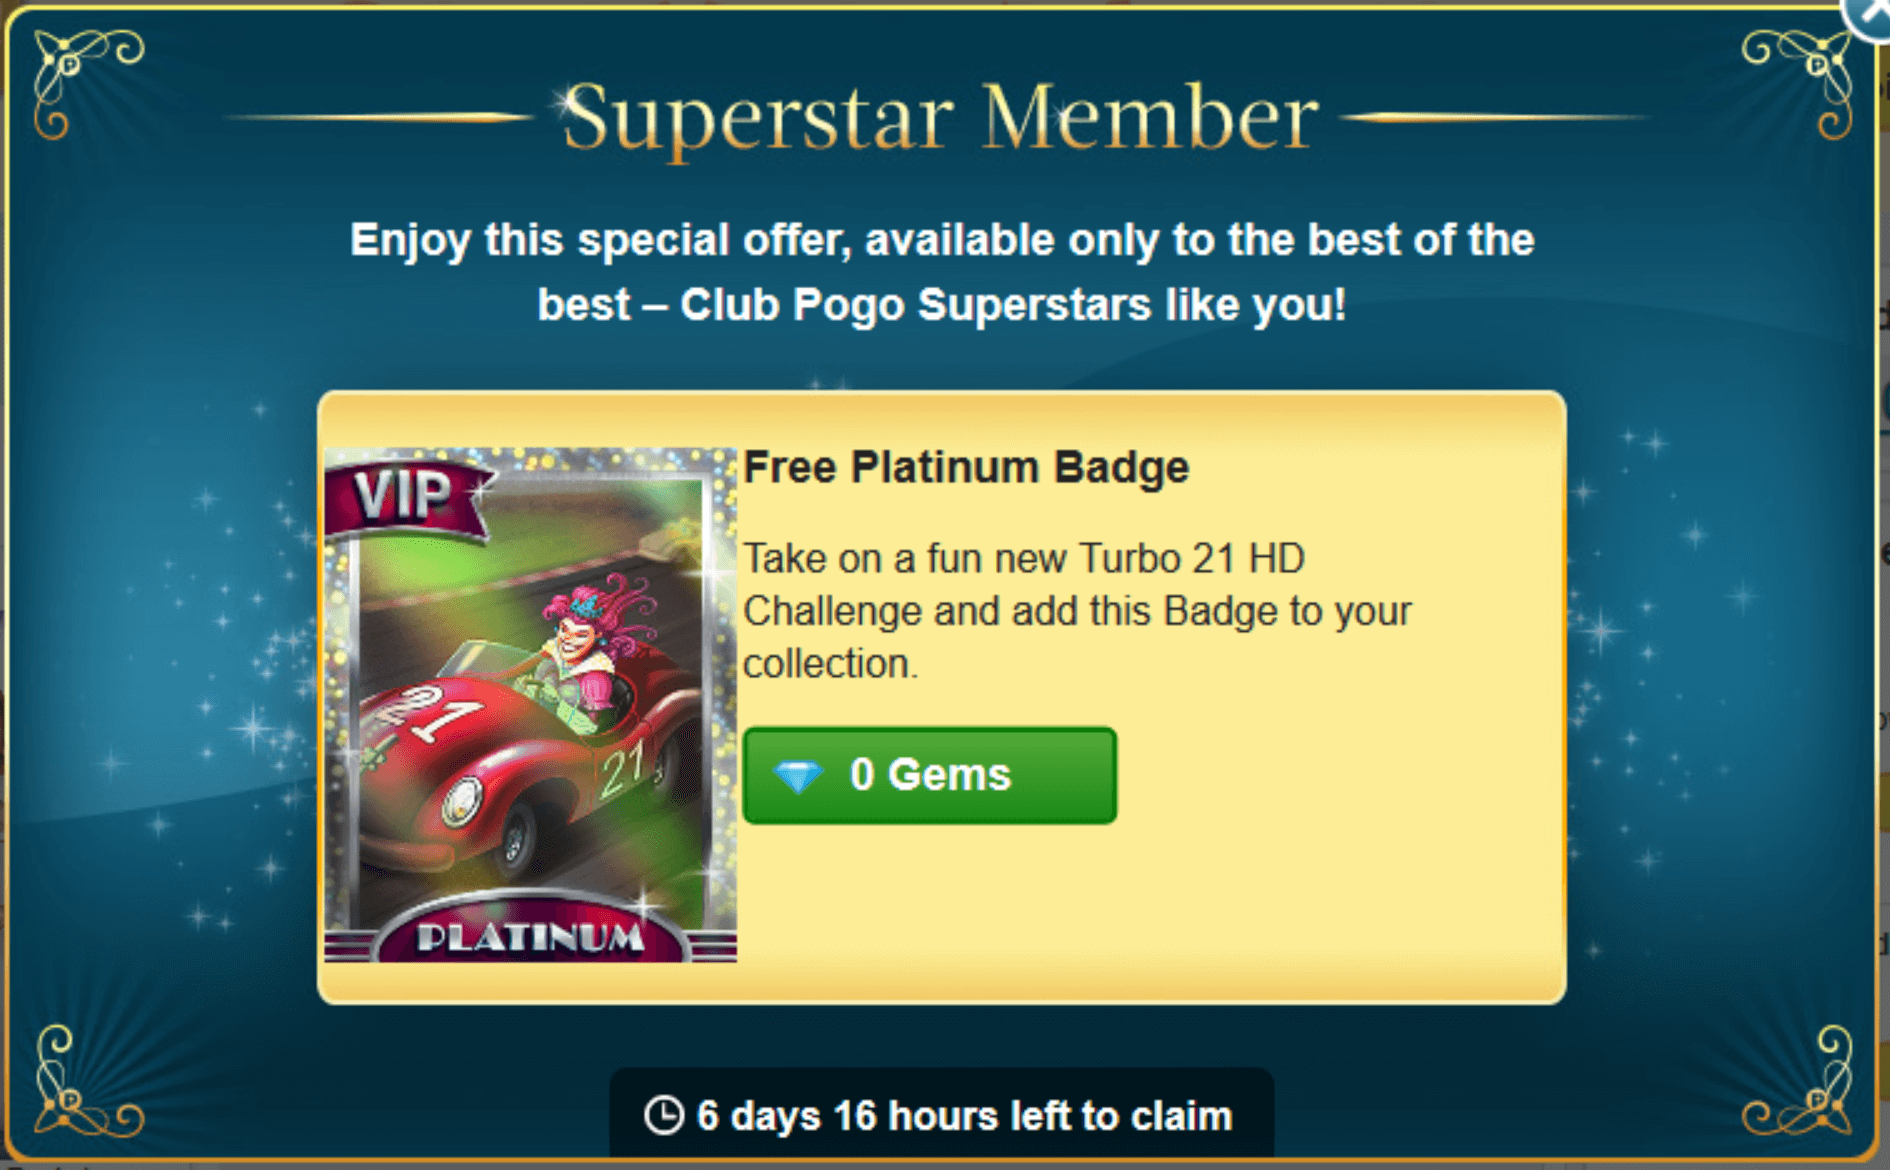 Turbo 21 HD Superstar Offer Premium Badge